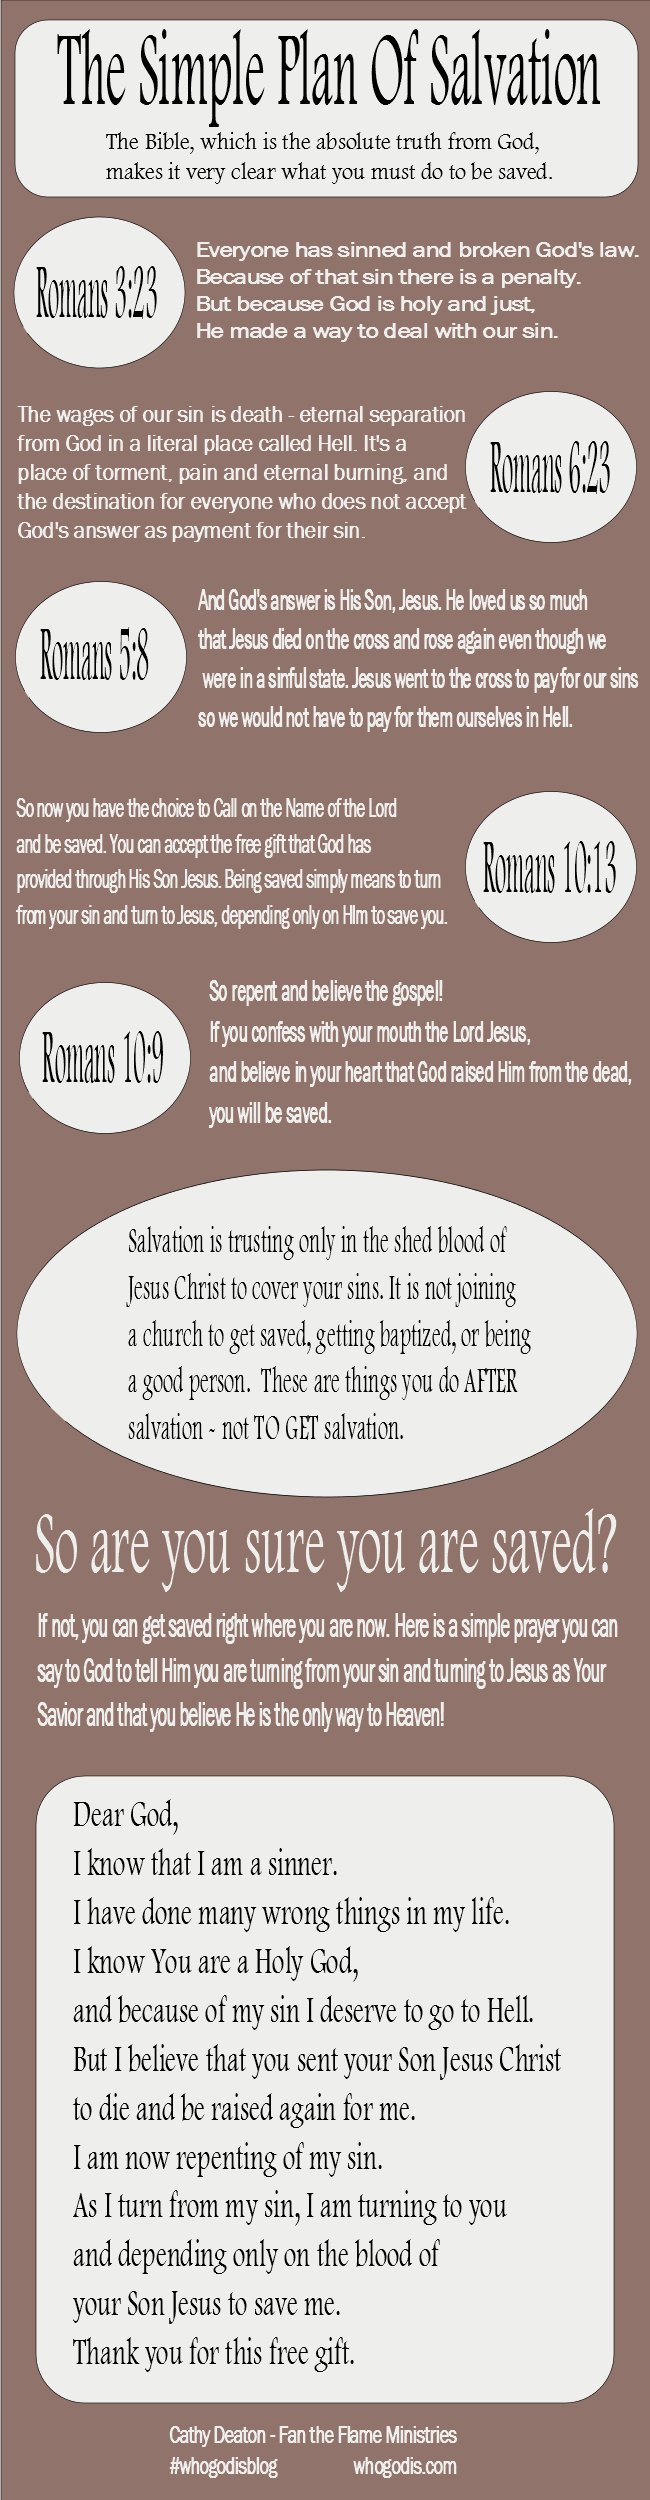 simple-plan-of-salvation